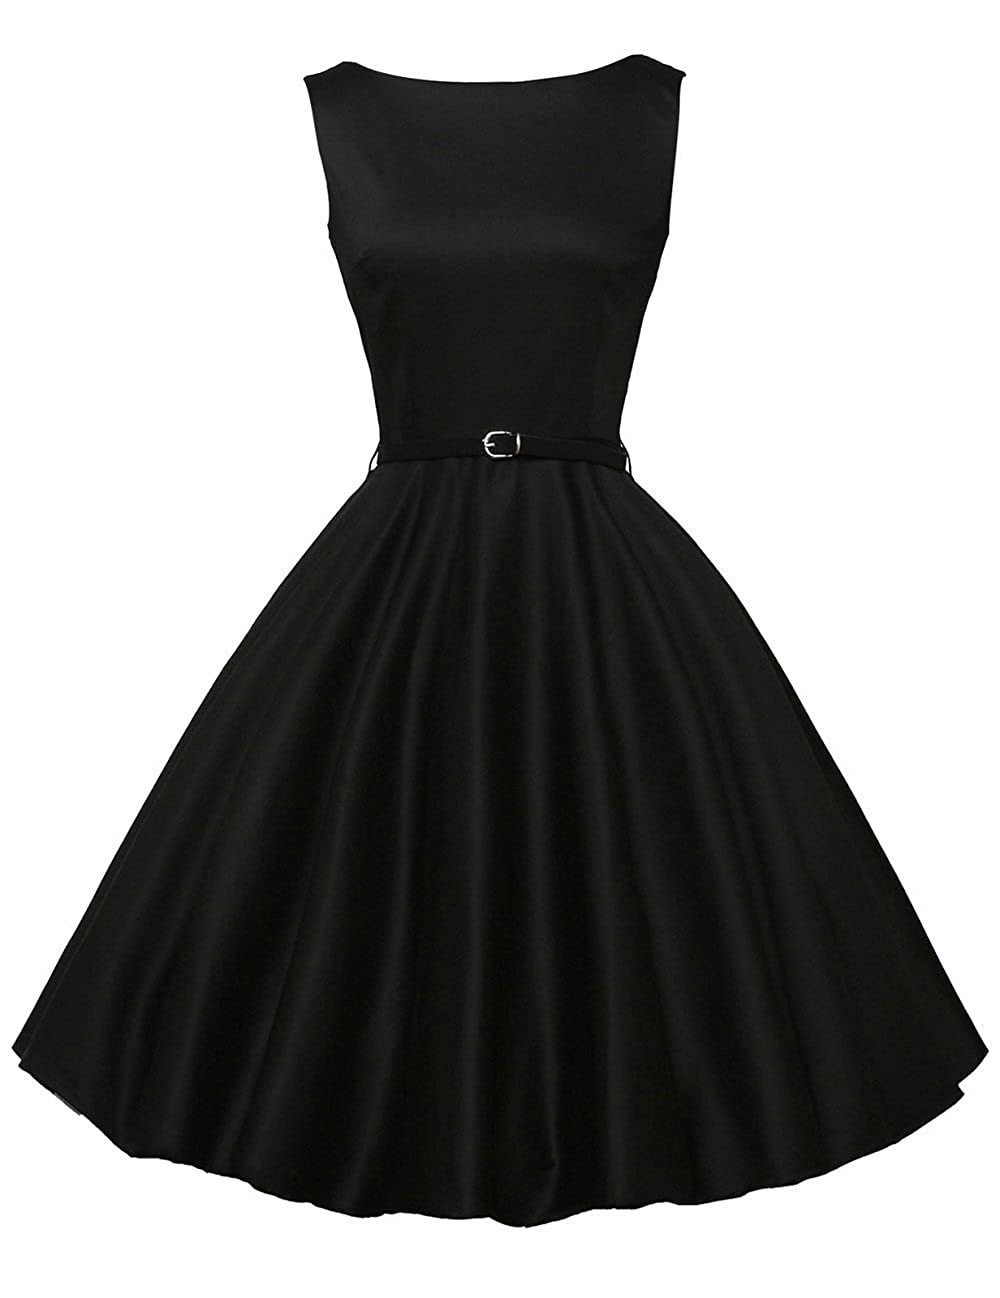 1950s Swing Dresses | 50s Swing Dress GRACE KARIN Boatneck Sleeveless Vintage Tea Dress Belt $31.99 AT vintagedancer.com